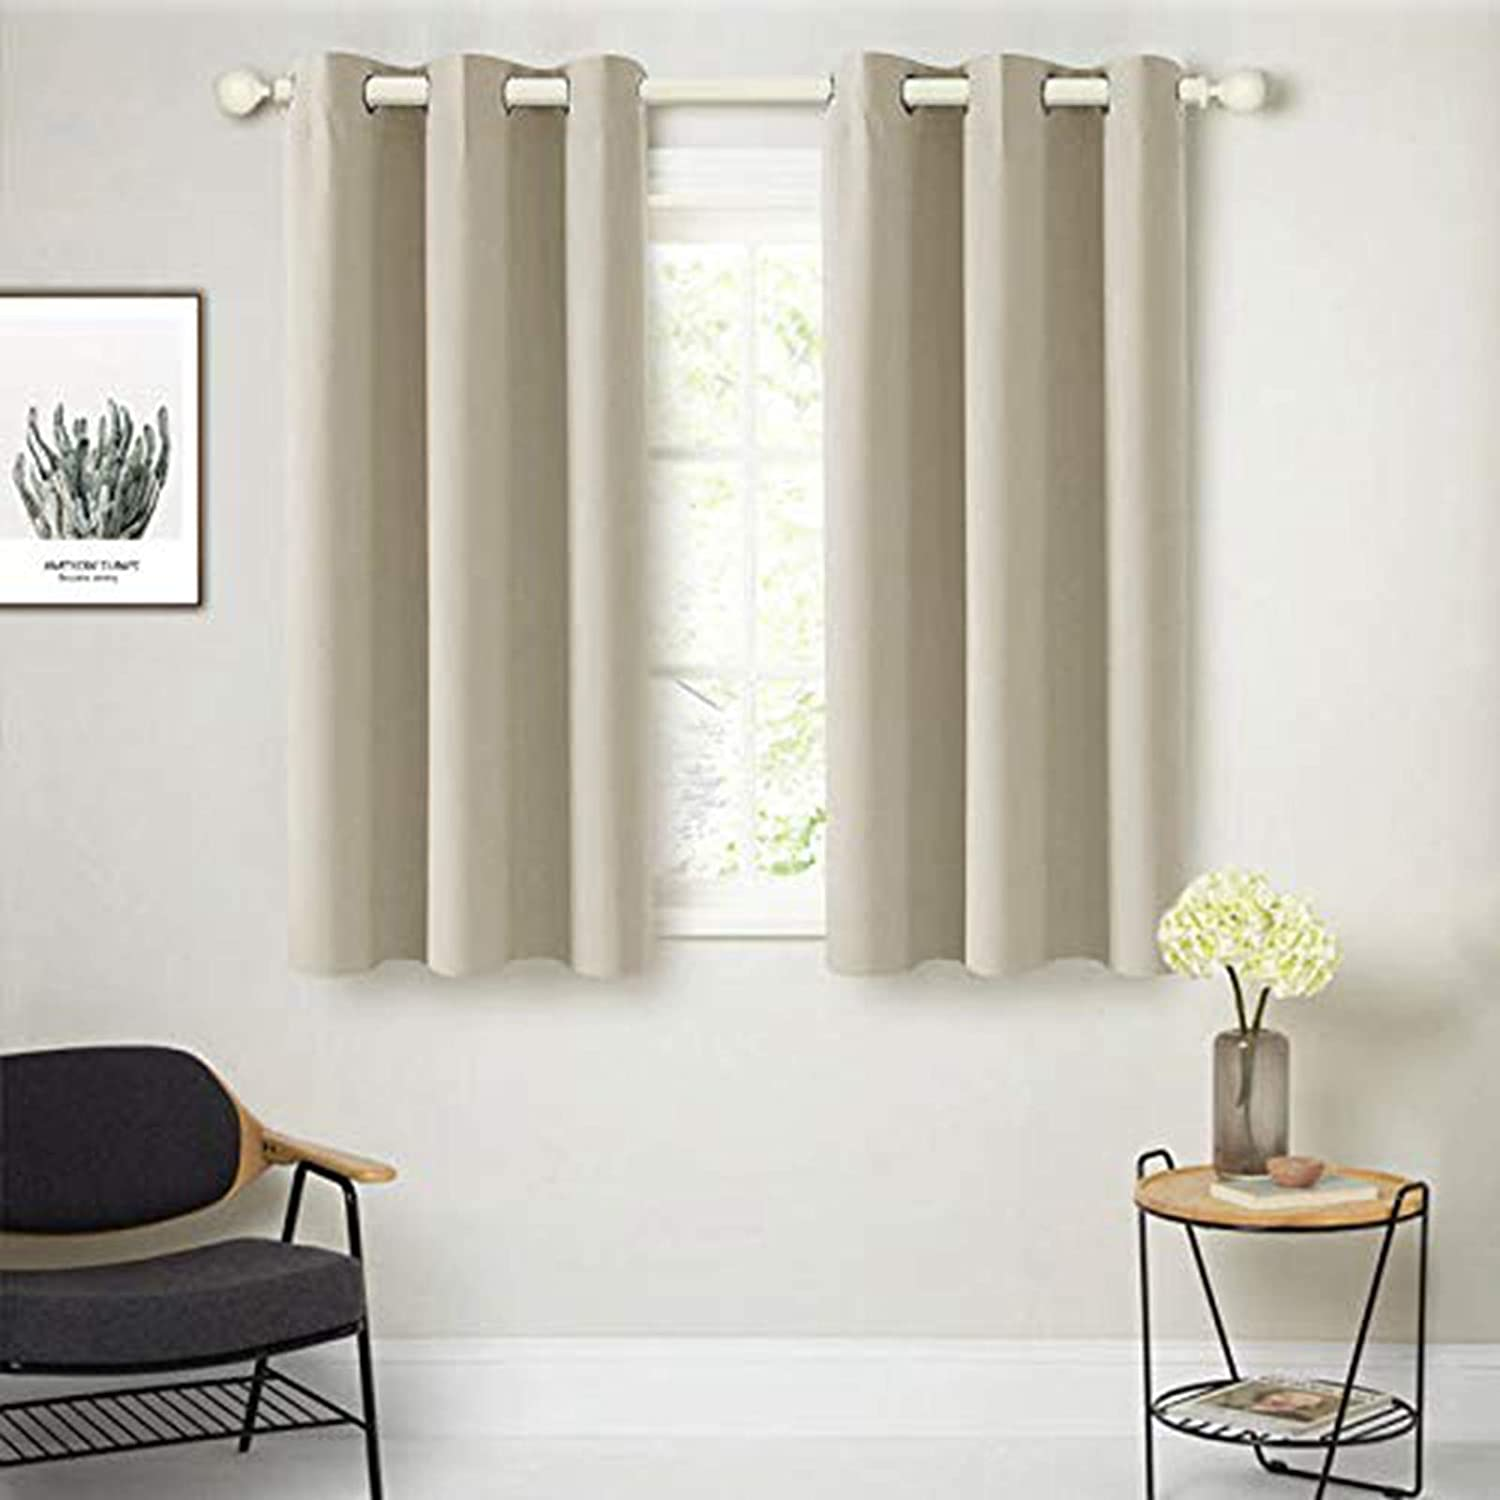 Amazon Com Cutewind Beige Little Girl Blackout Curtains For Bedroom Set 45 Inches Length Ring Top Thermal Insulted Room Darkening Window Treatments For Living Room 2 Panels W42 L45inch Beige Kitchen Dining